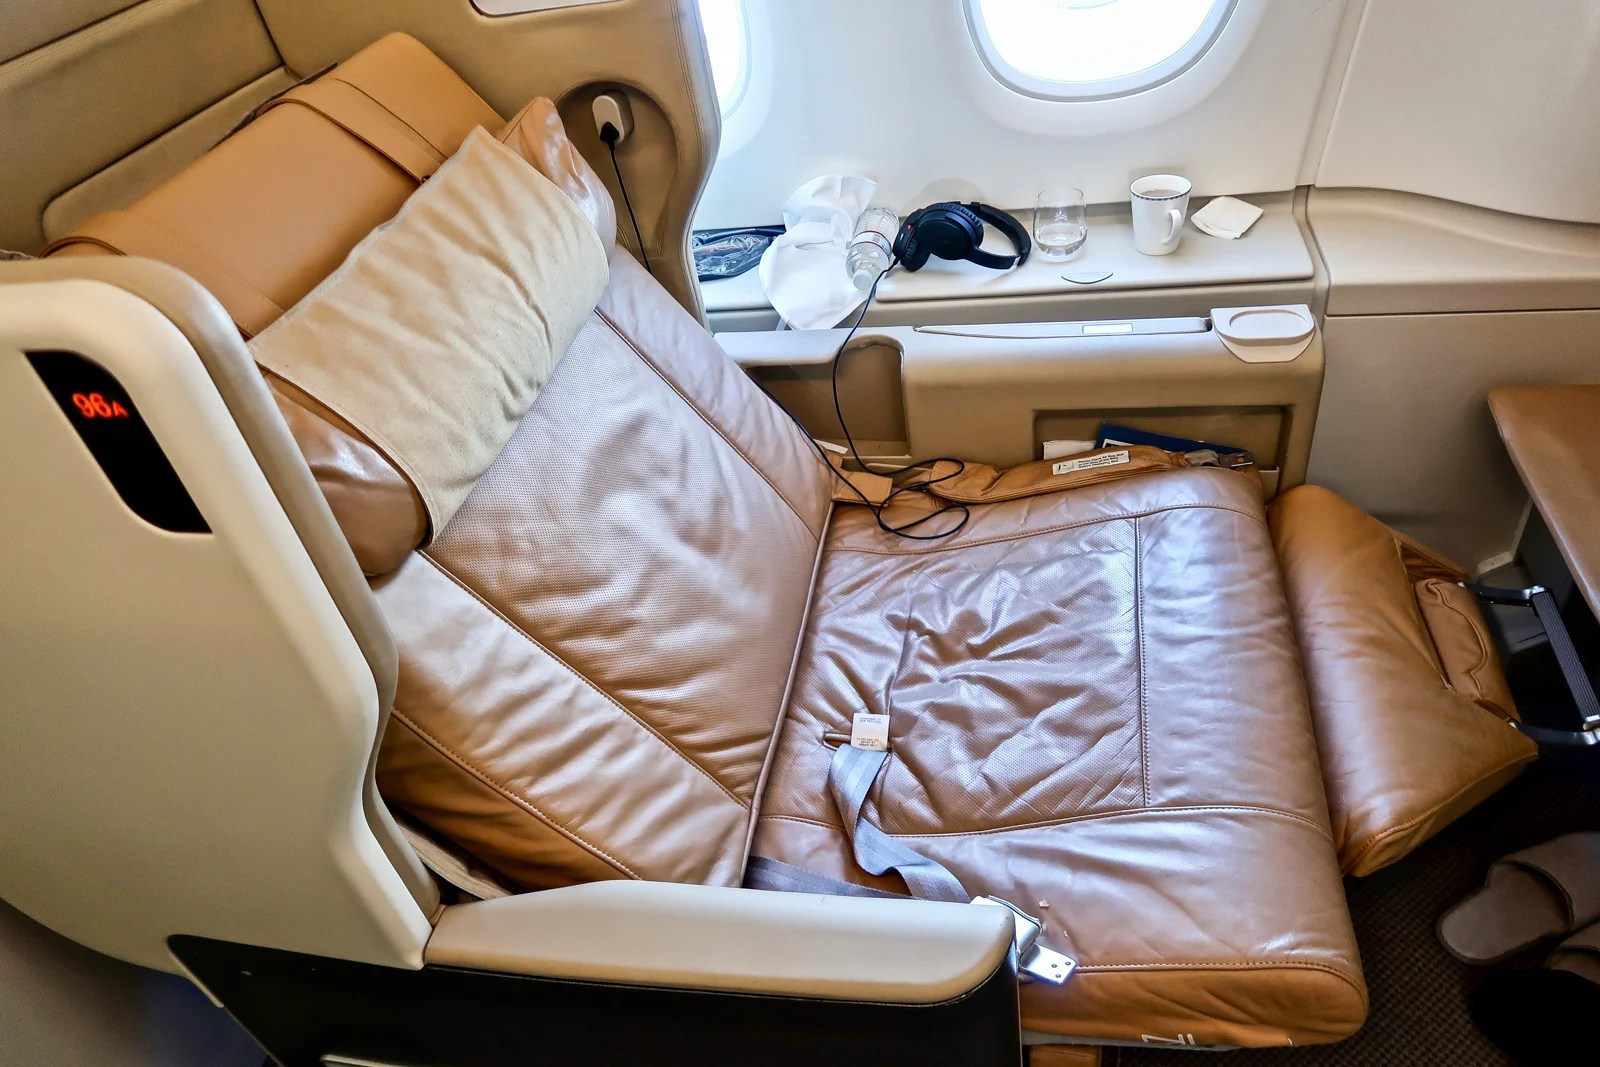 Review: Singapore Airlines A380 in Biz From JFK to Frankfurt